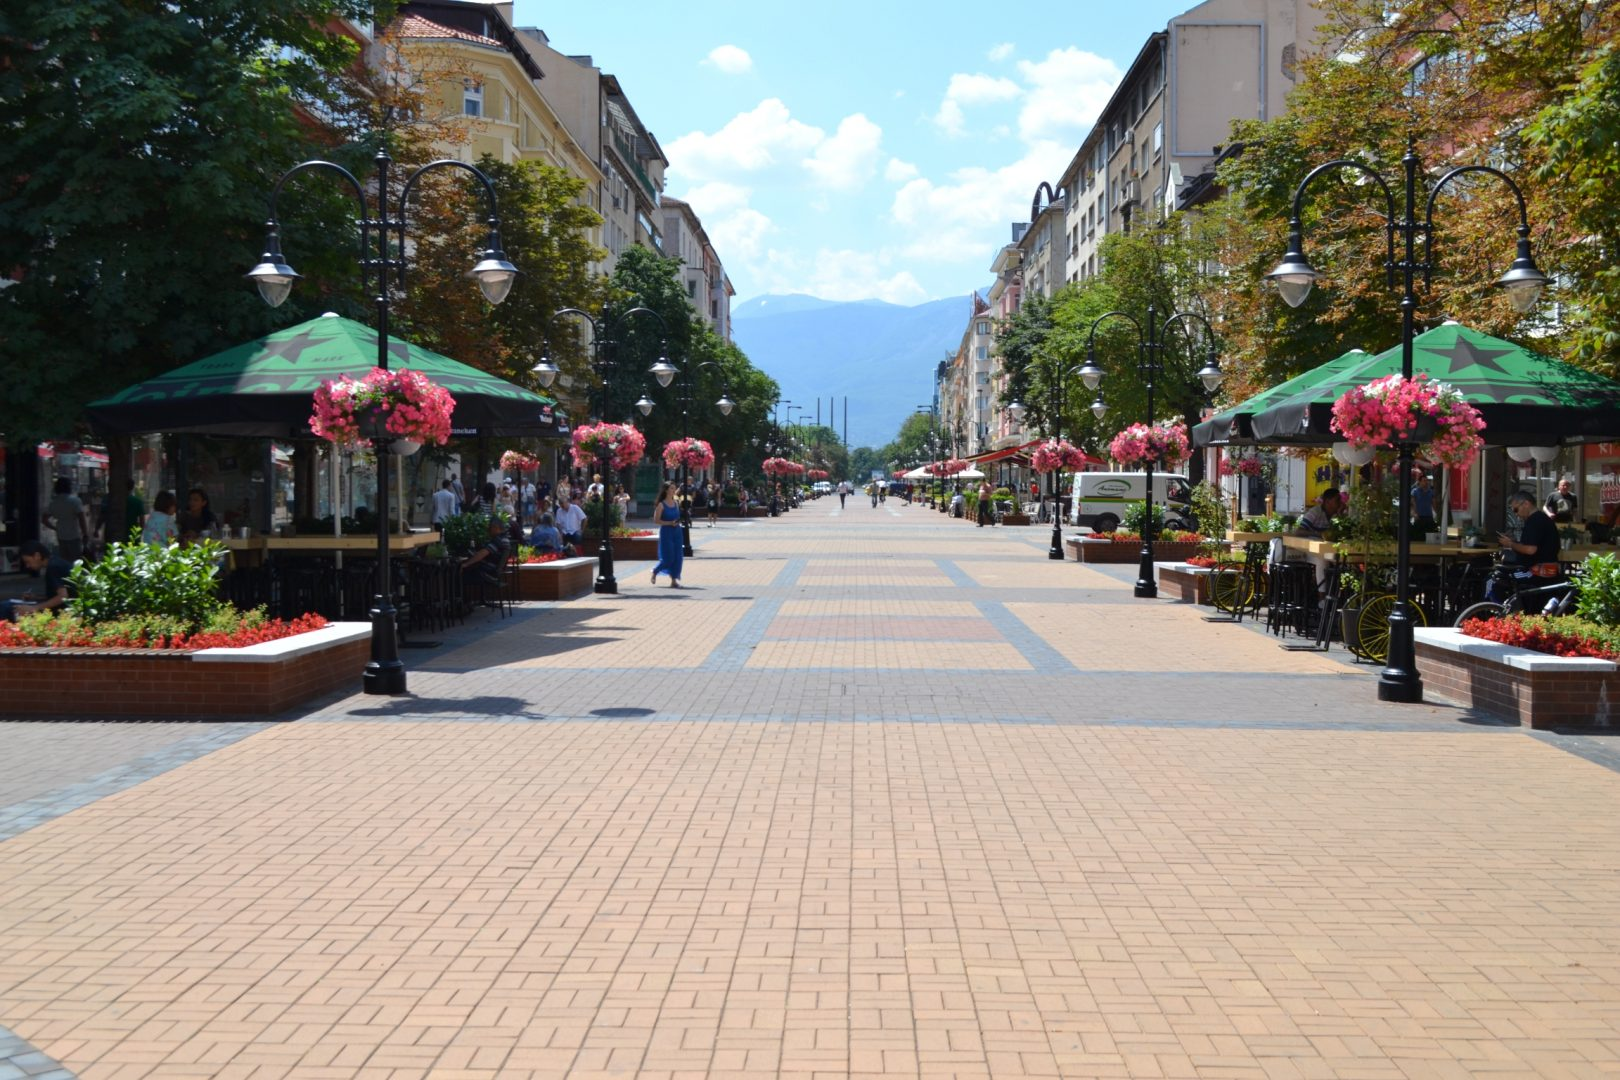 Vitosha street, a popular tourist destination